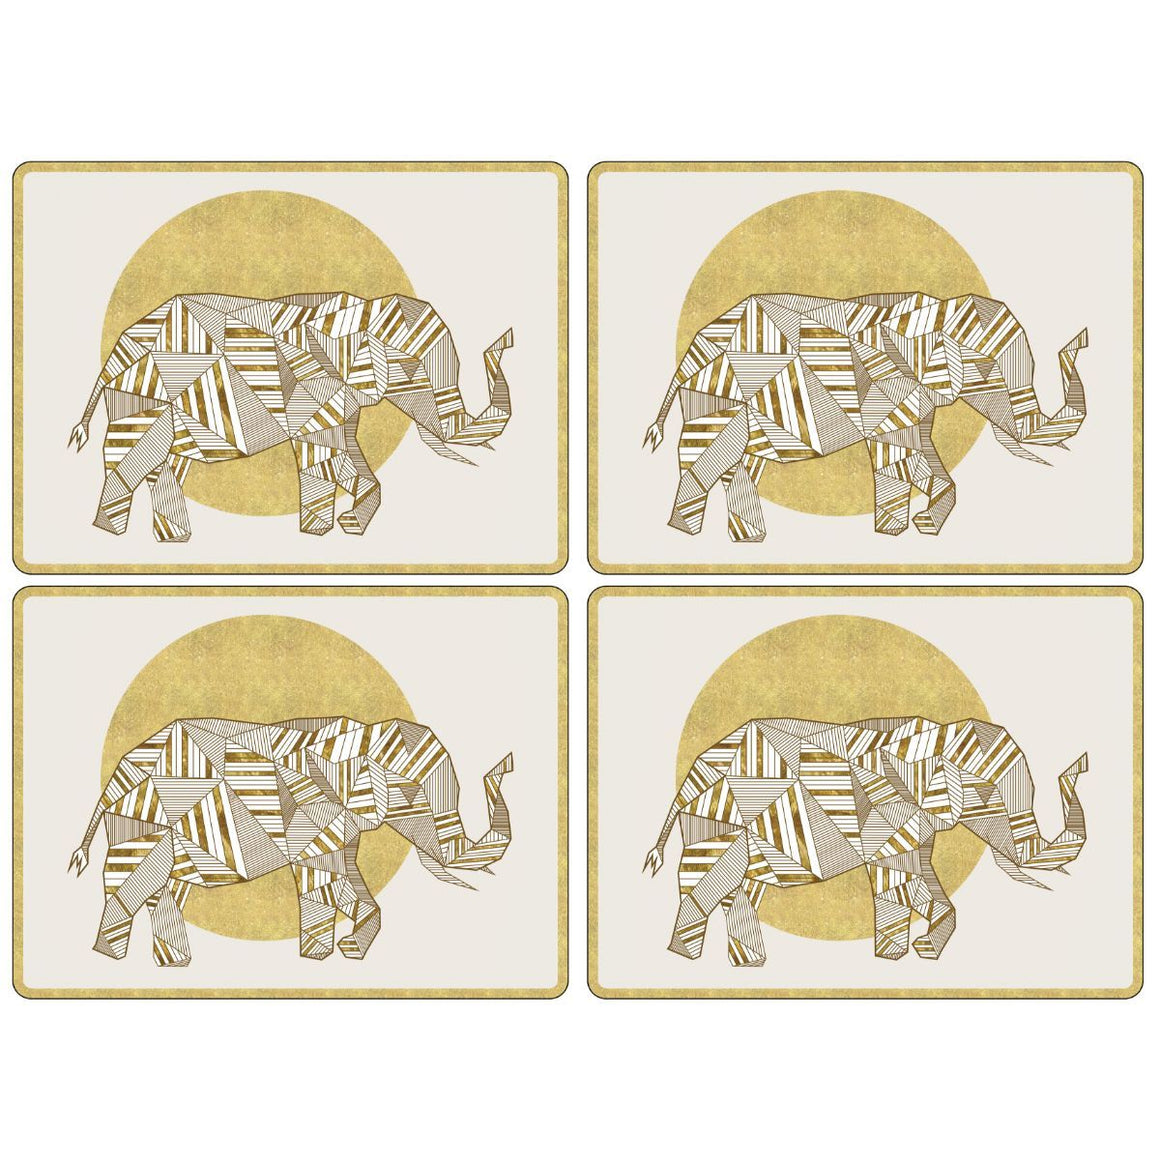 Geometric Golden Elephant Placemats, Set of 4